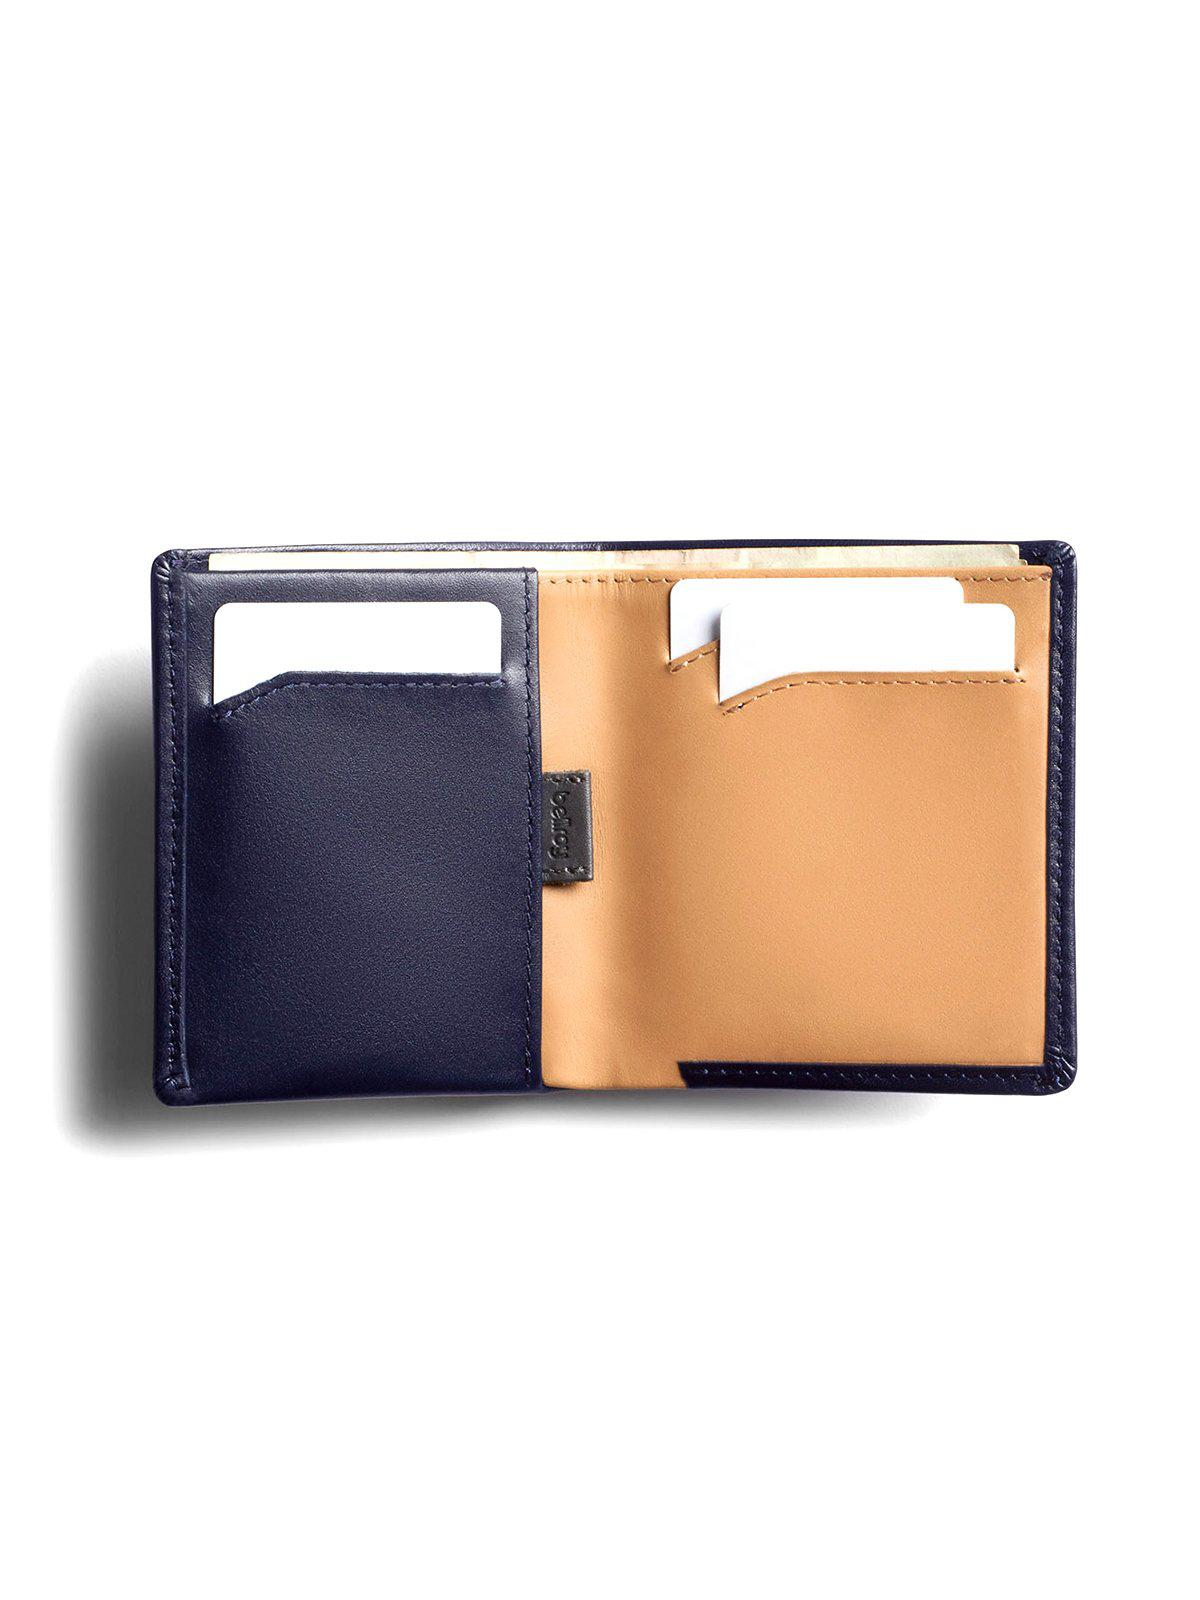 Bellroy Note Sleeve Wallet Navy RFID - MORE by Morello Indonesia